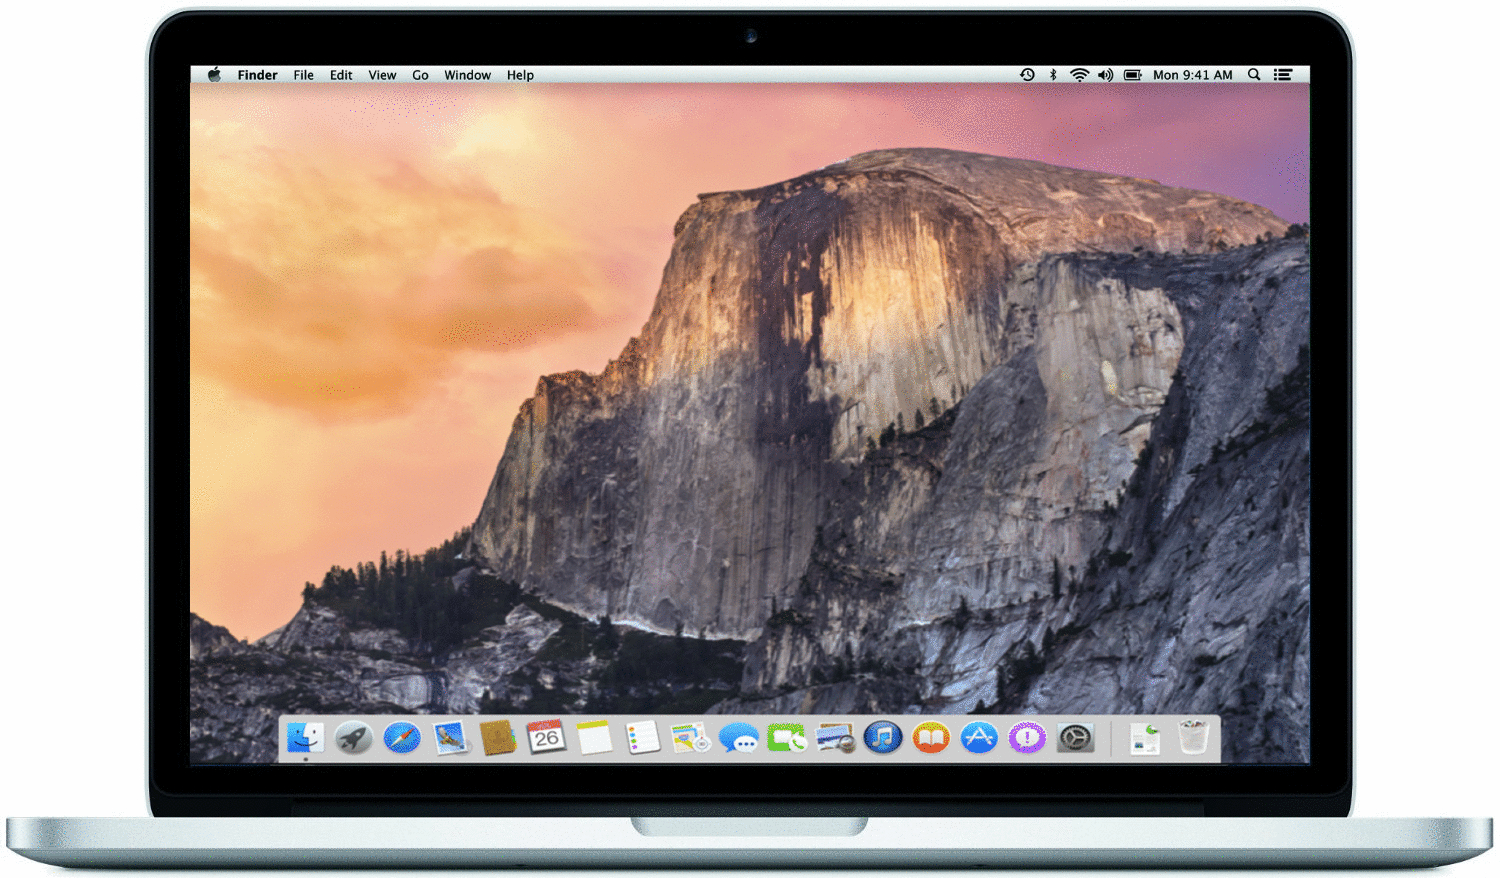 Apple MacBook Pro CTO 13.3 (Retina Display) 2.9 GHz Intel Core i5 8 GB RAM 1 TB PCIe SSD [Early 2015]